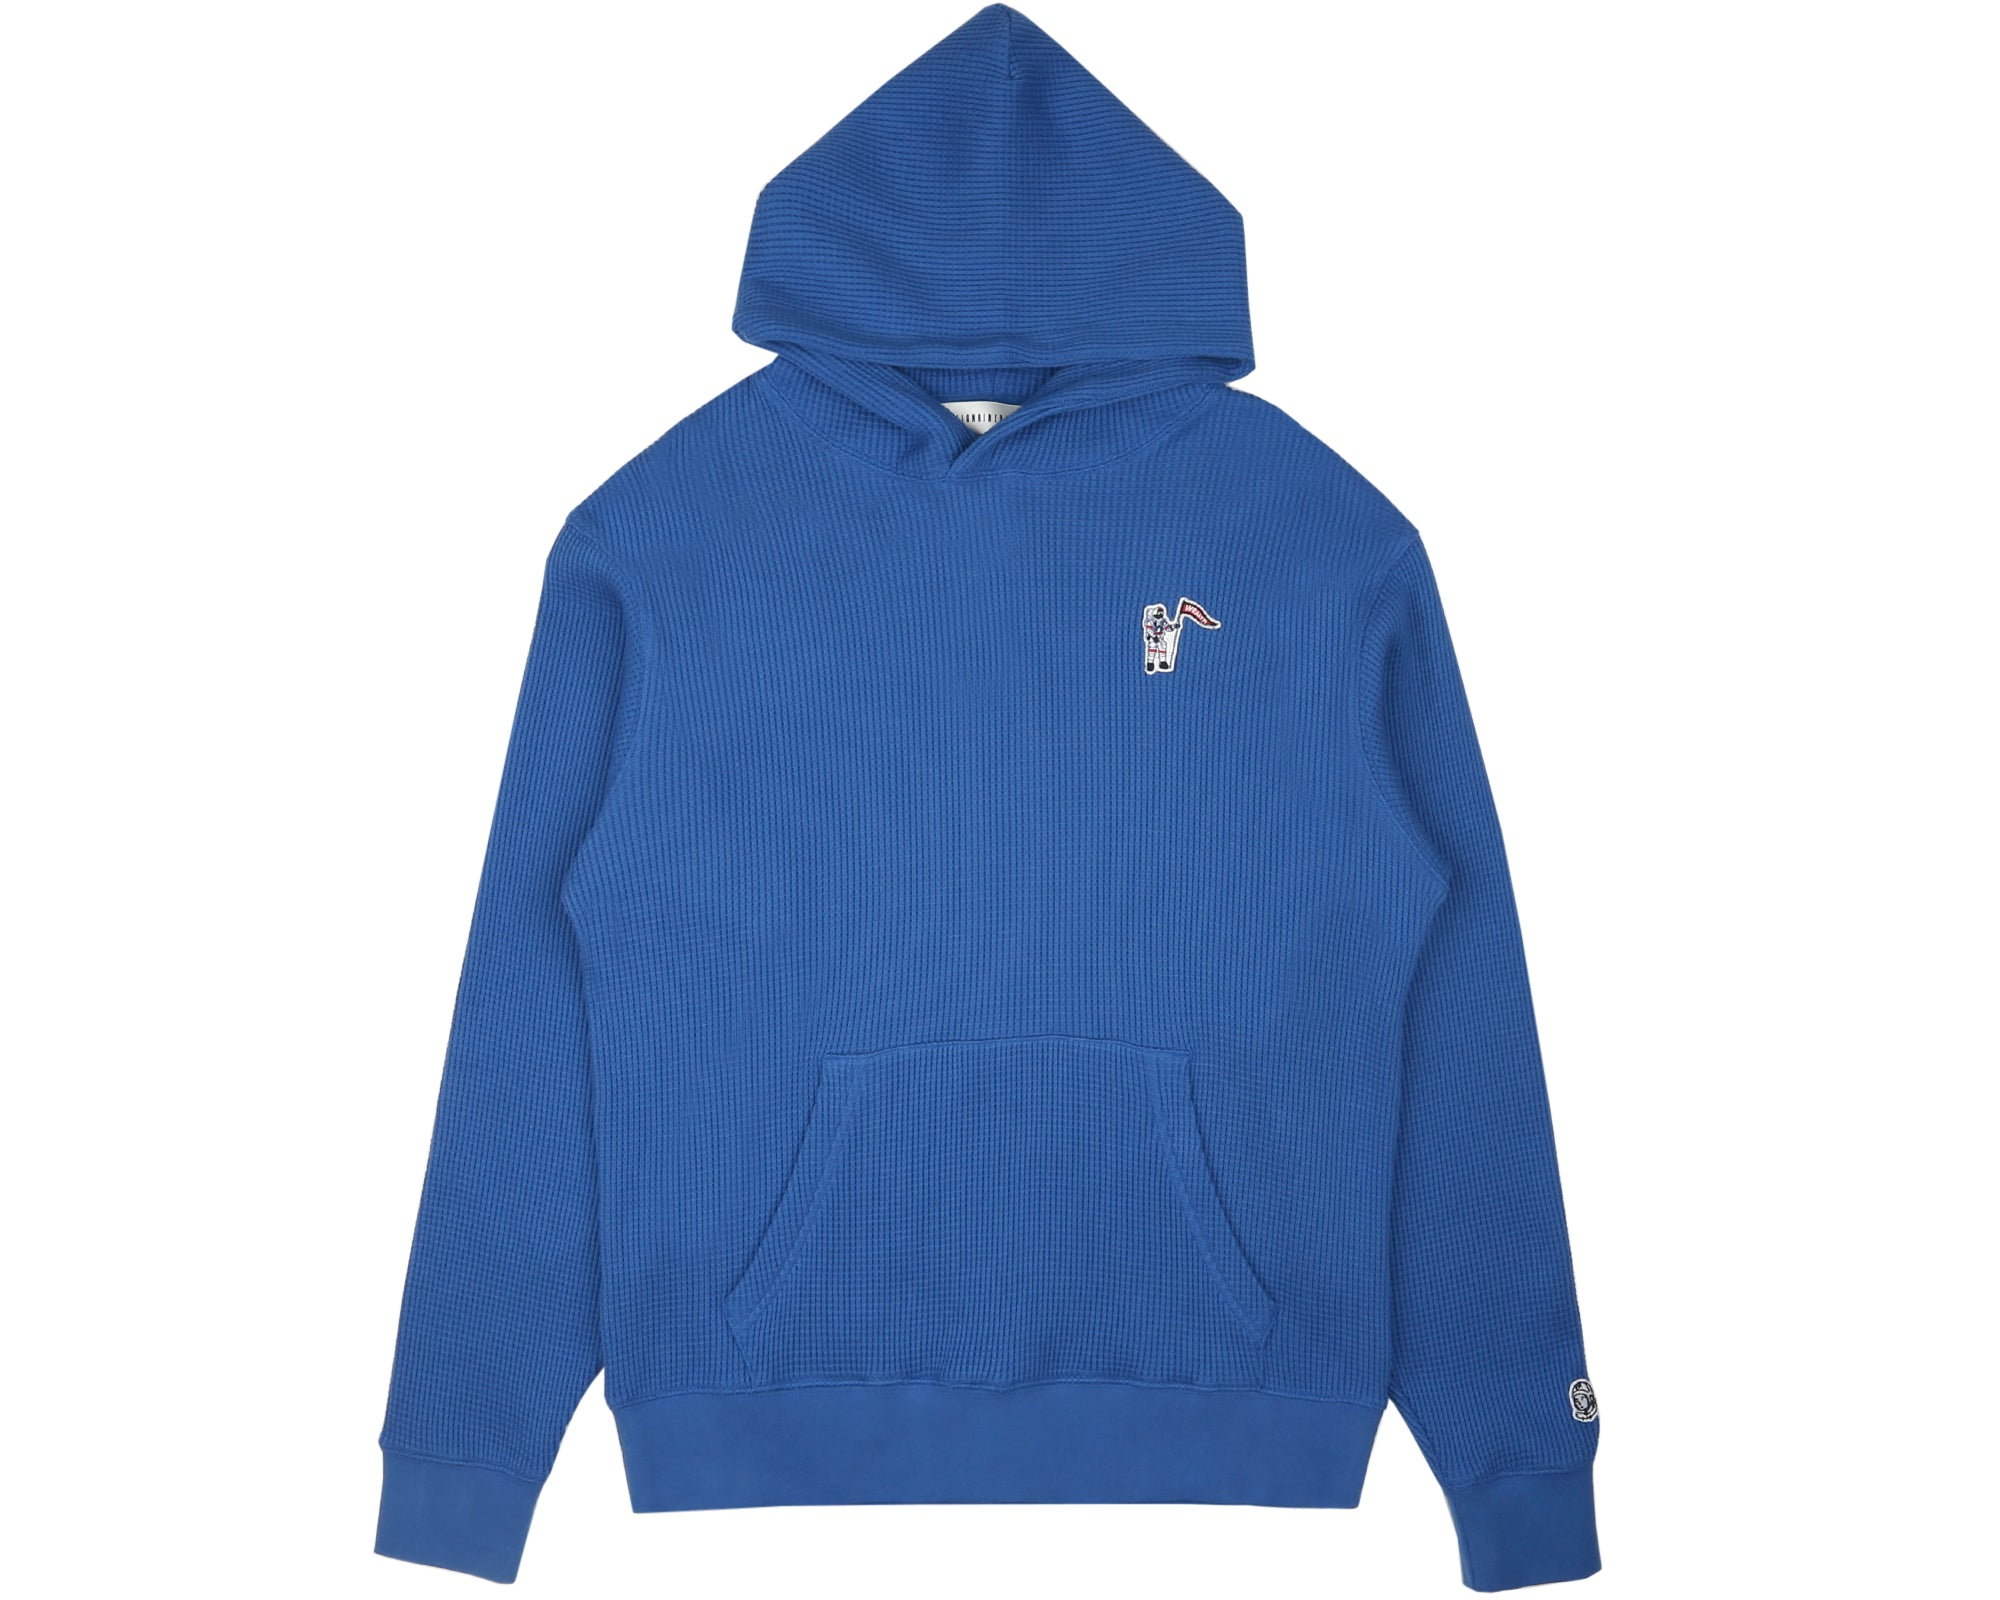 WAFFLE JERSEY POPOVER HOOD - BLUE